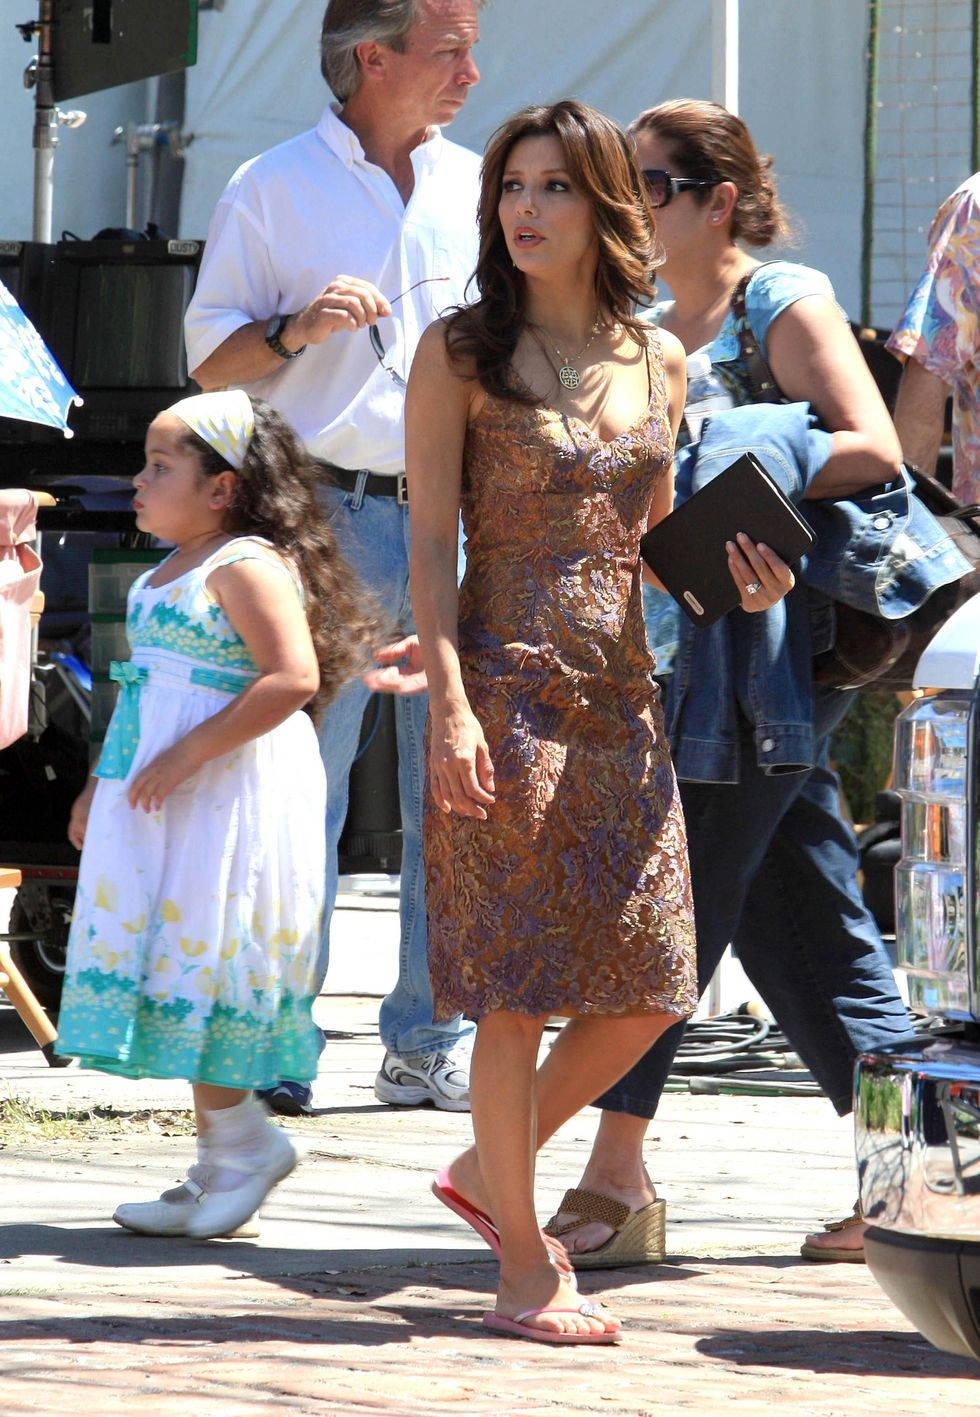 eva-longoria-on-the-set-of-desperate-housewives-01